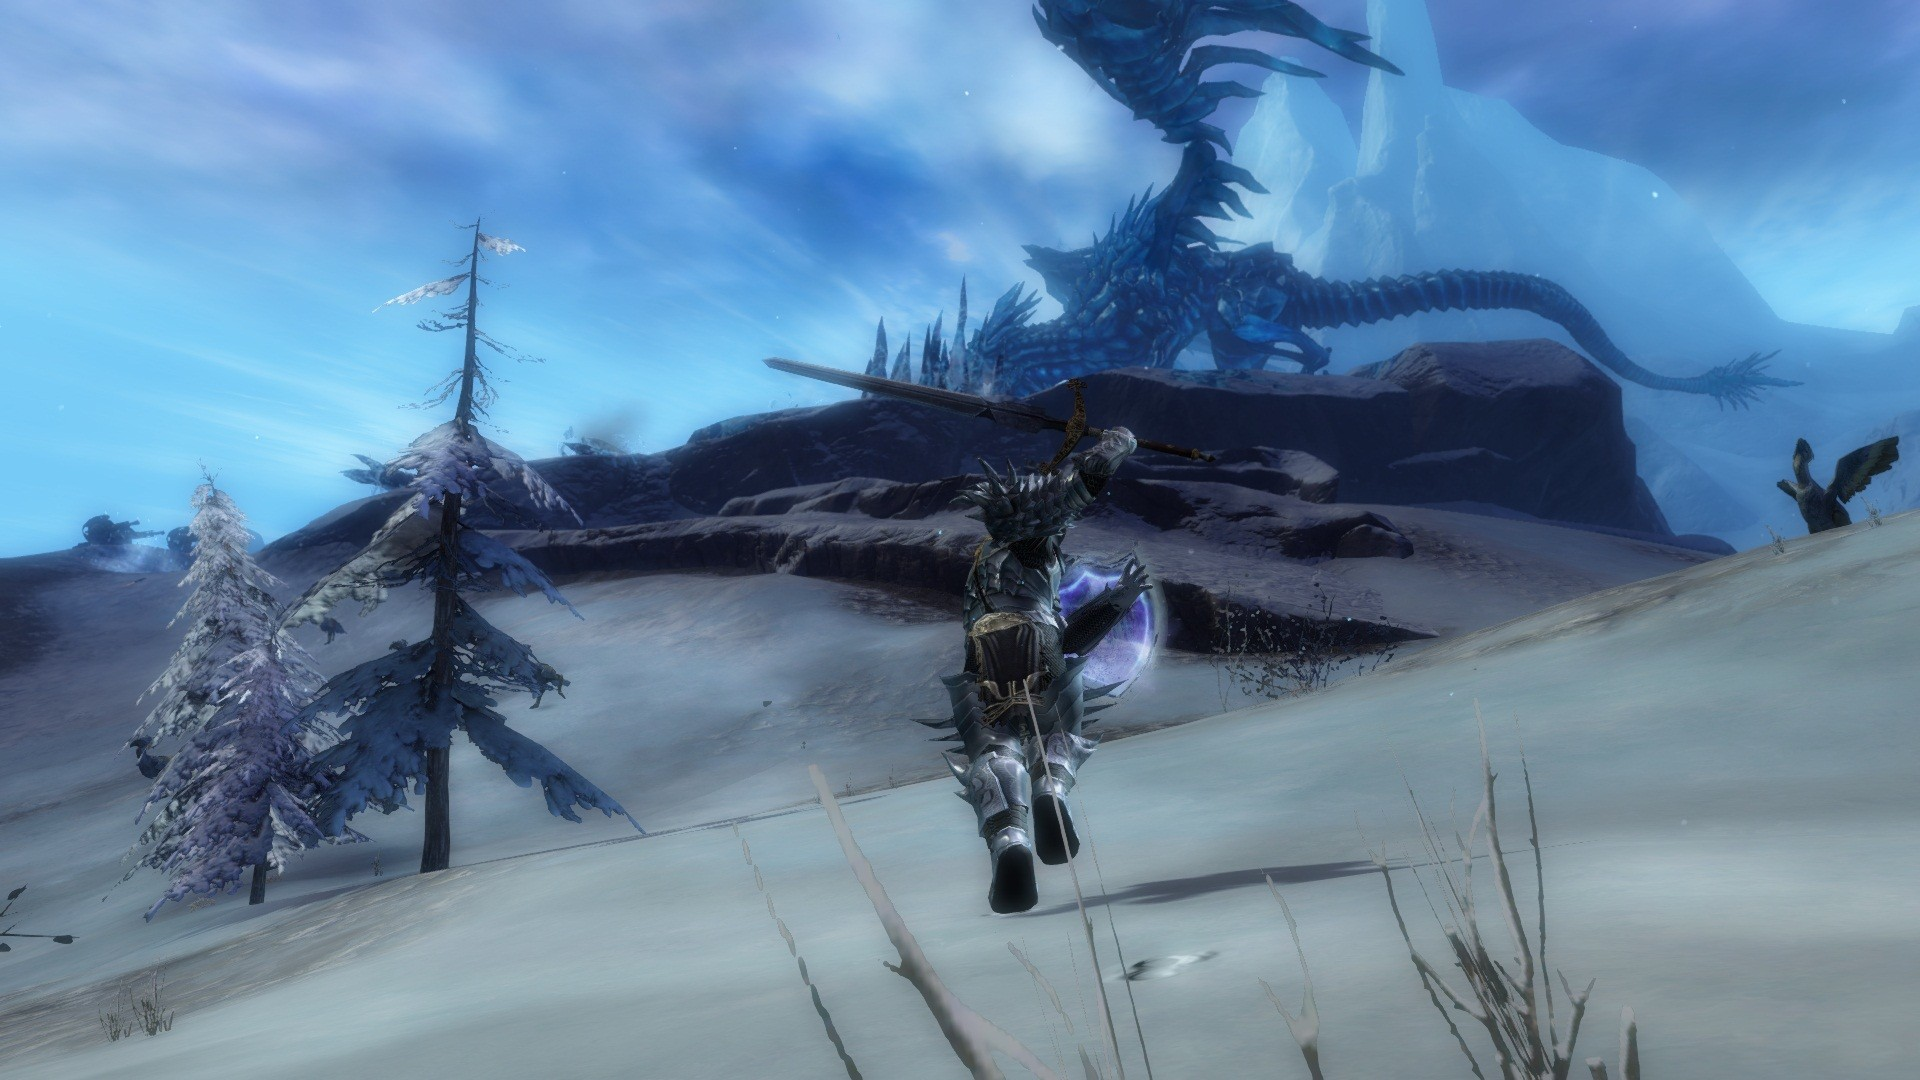 Guild Wars 2 - On my way to fight Jormags Claw.